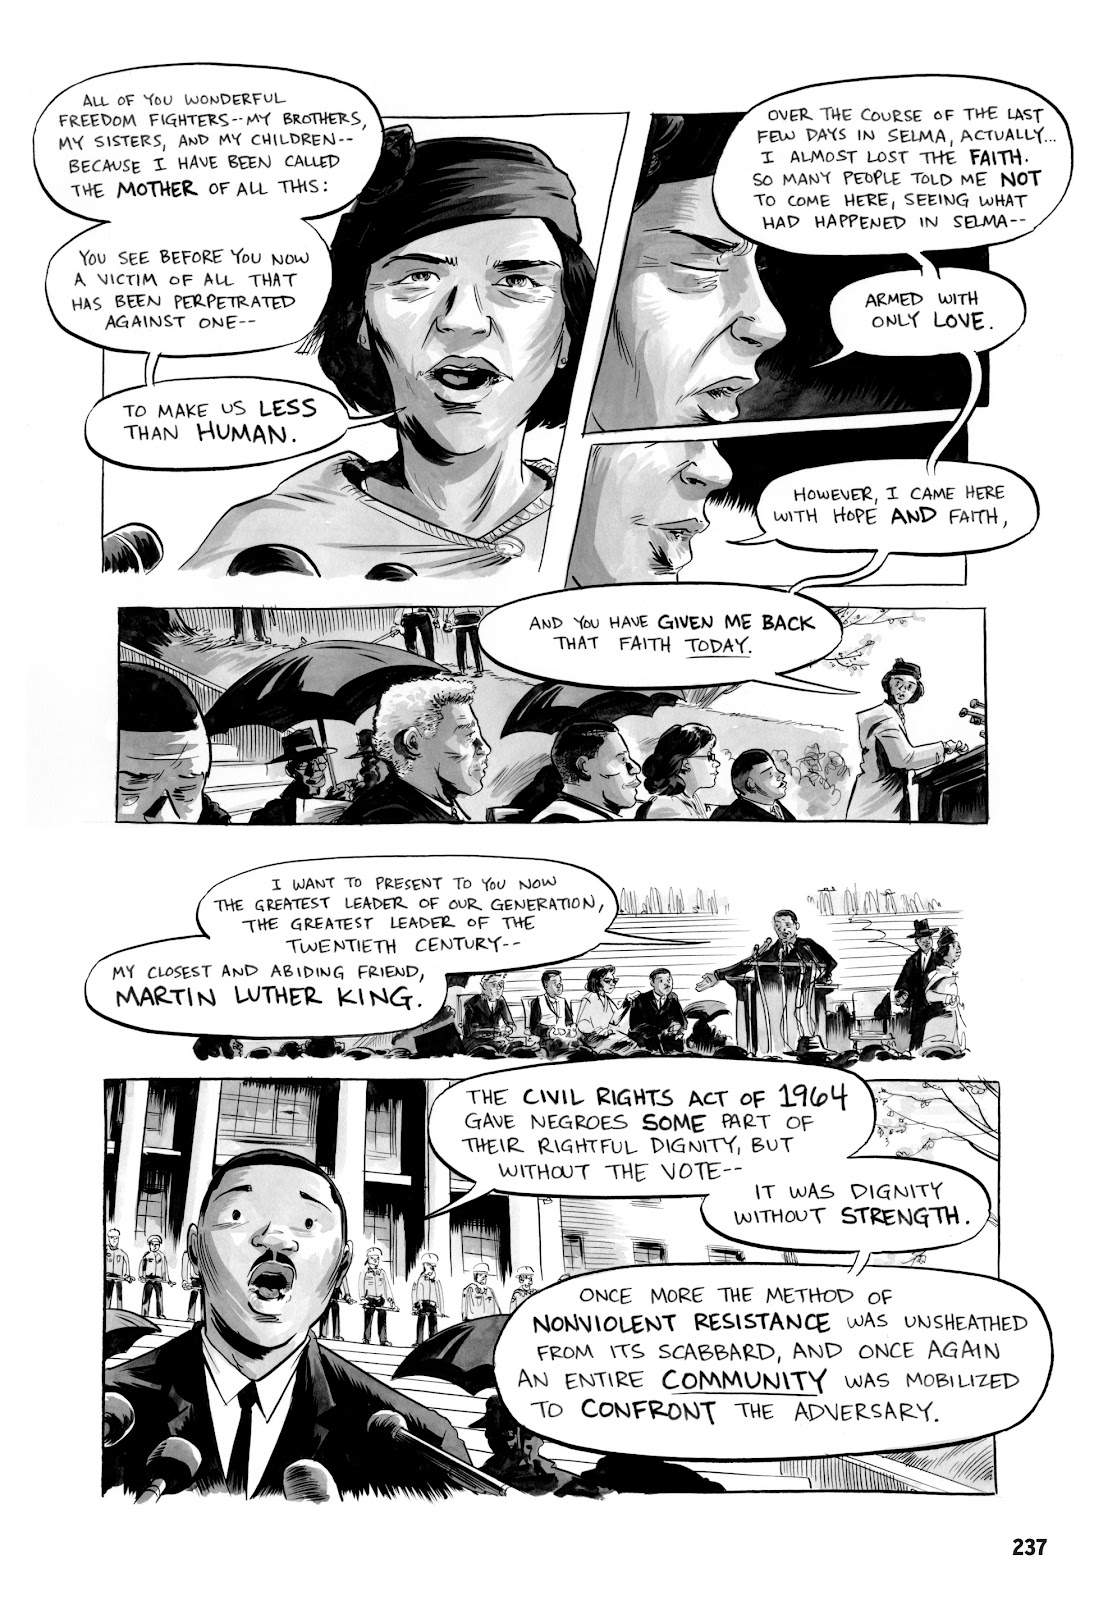 March 3 Page 231